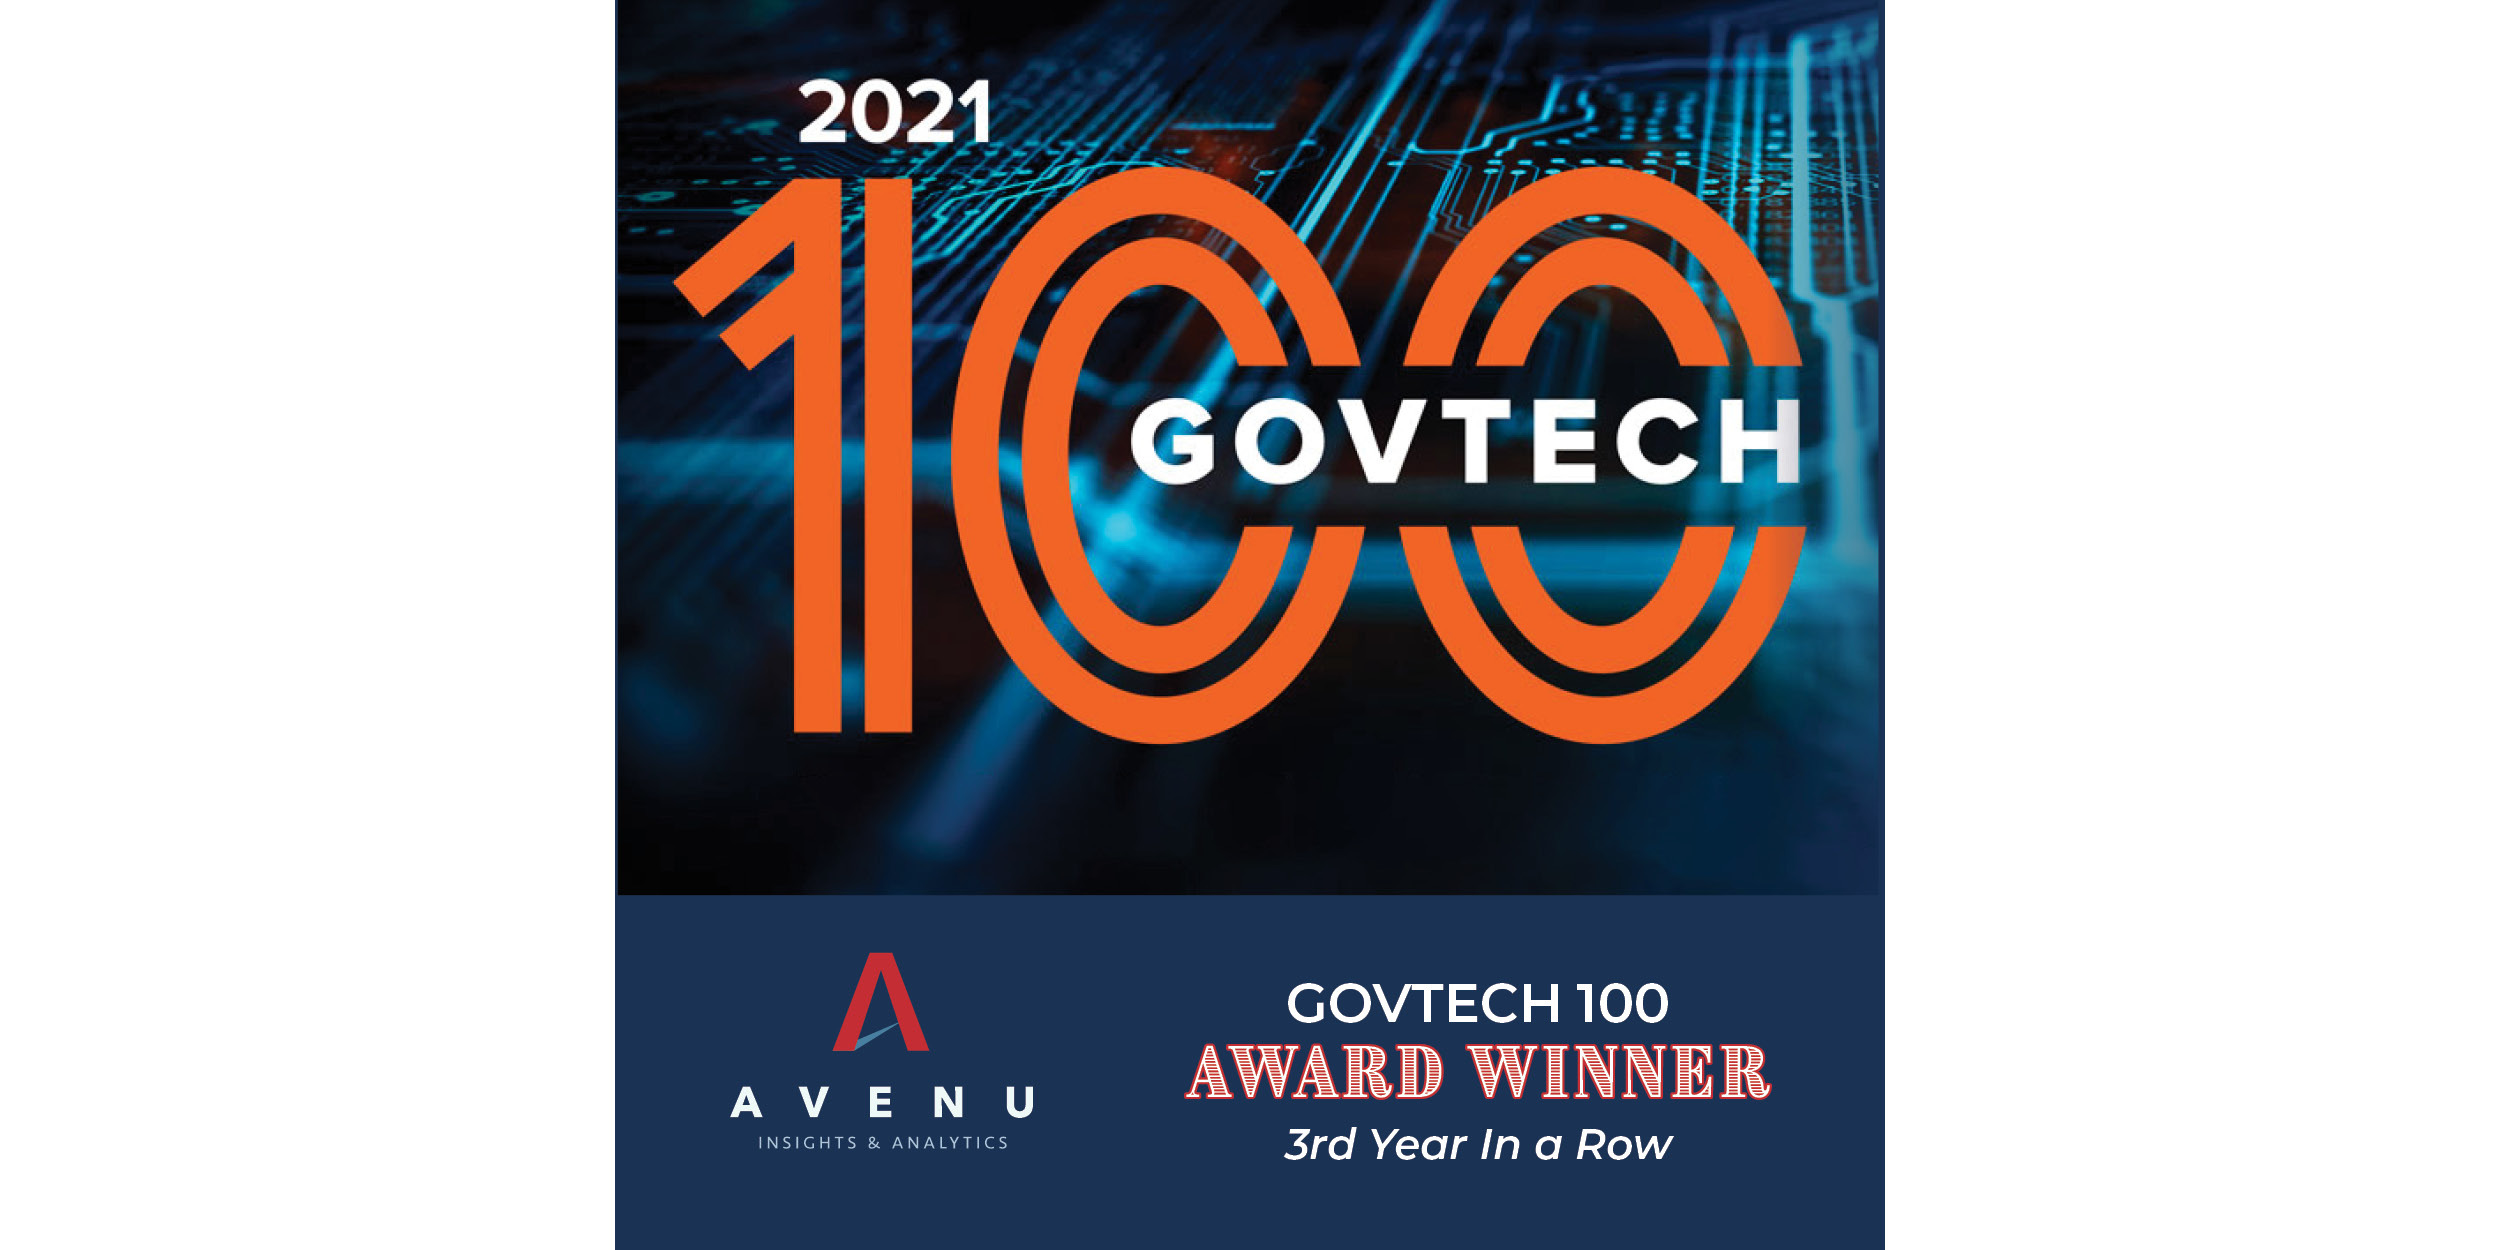 Avenu Insights & Analytics Recognized as GovTech 100 Company for Third Consecutive Year